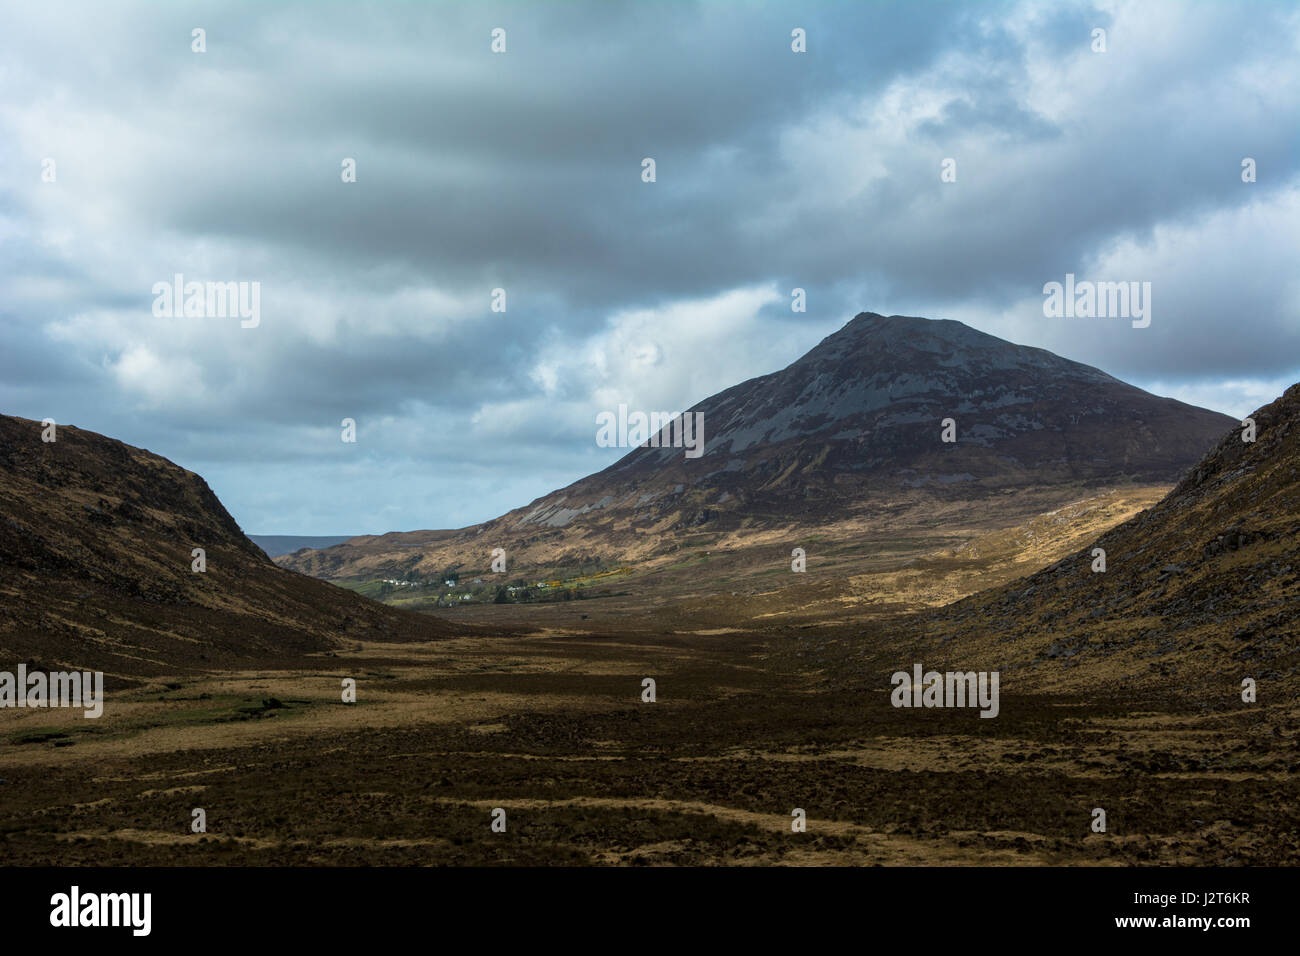 Errigal Mountain The Poisoned Glen Dunlewey Gweedore Donegal Ireland Europe - Stock Image